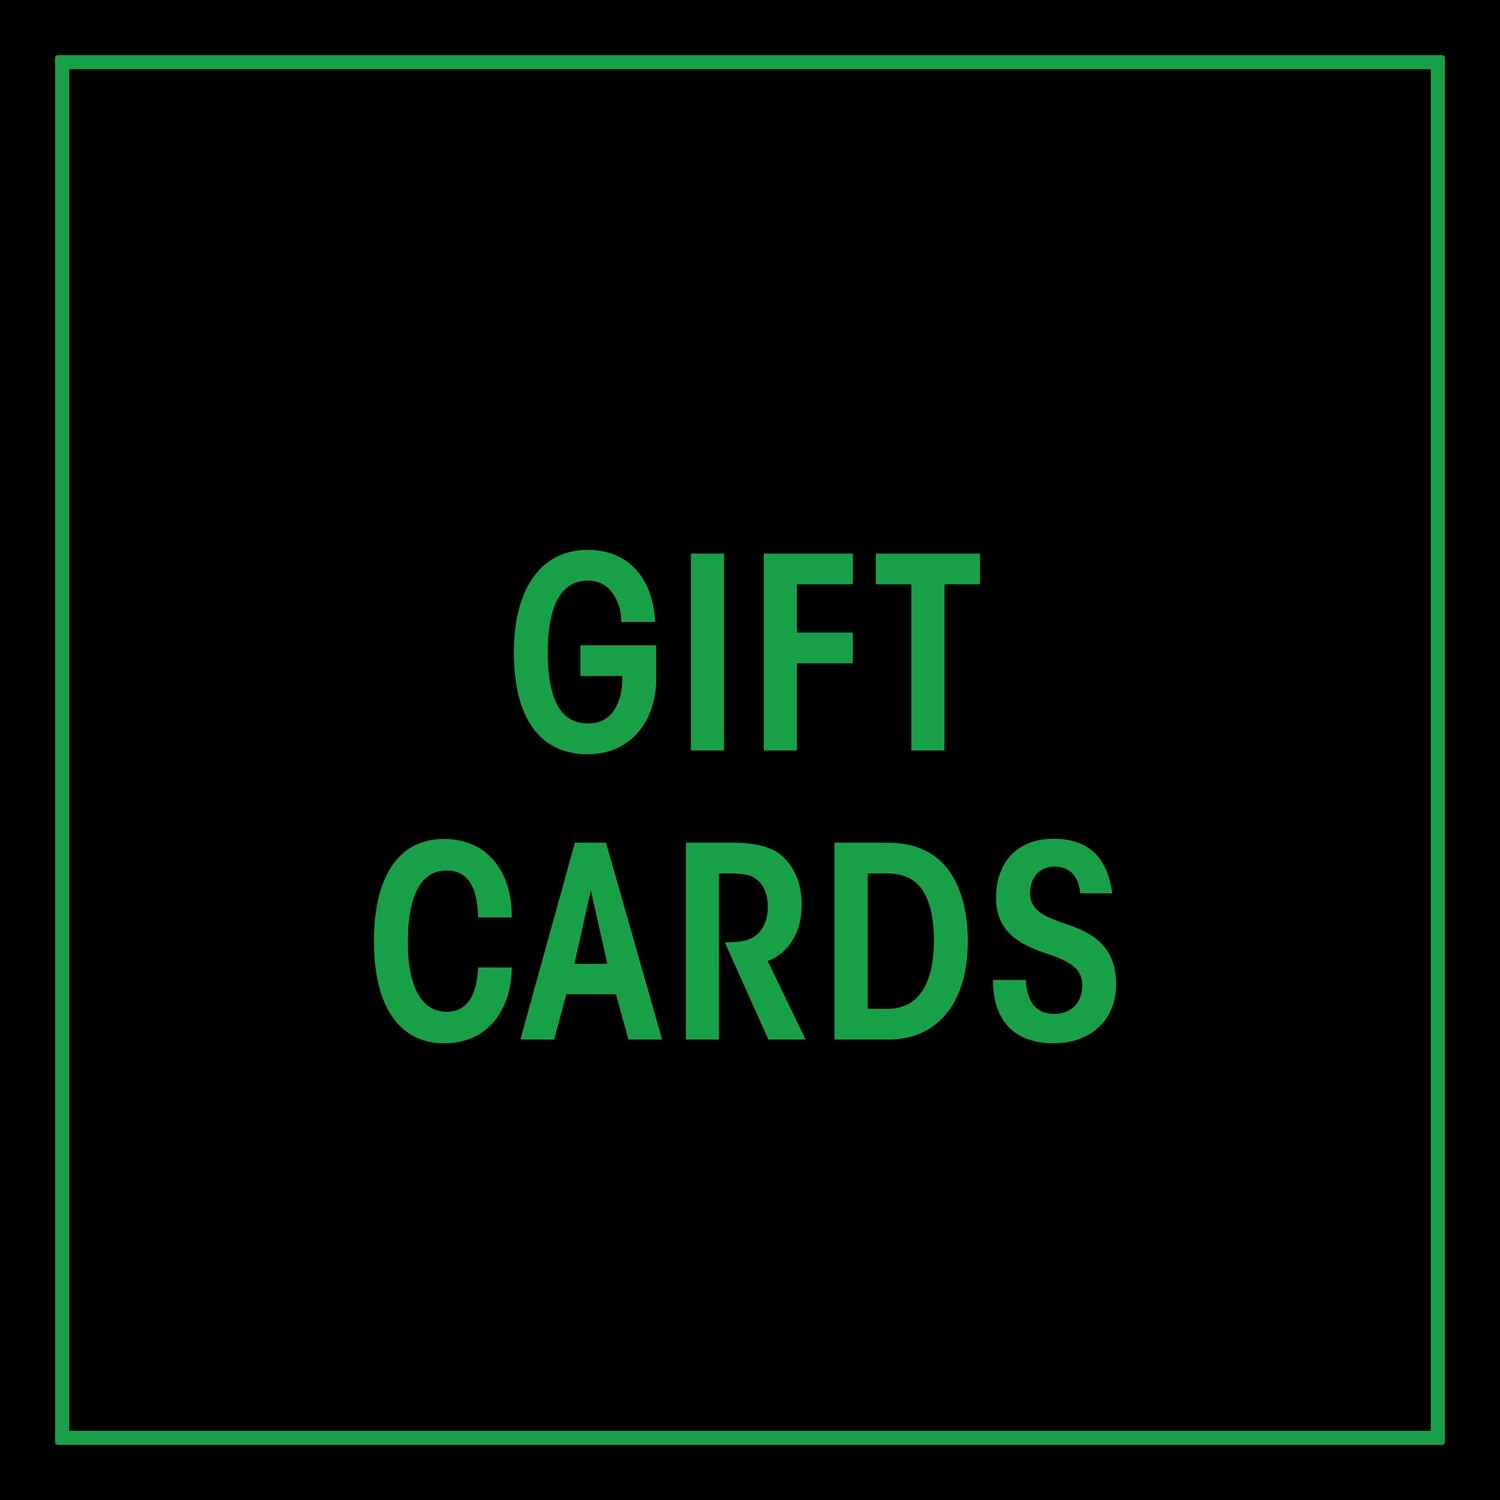 Alex's Gift Cards